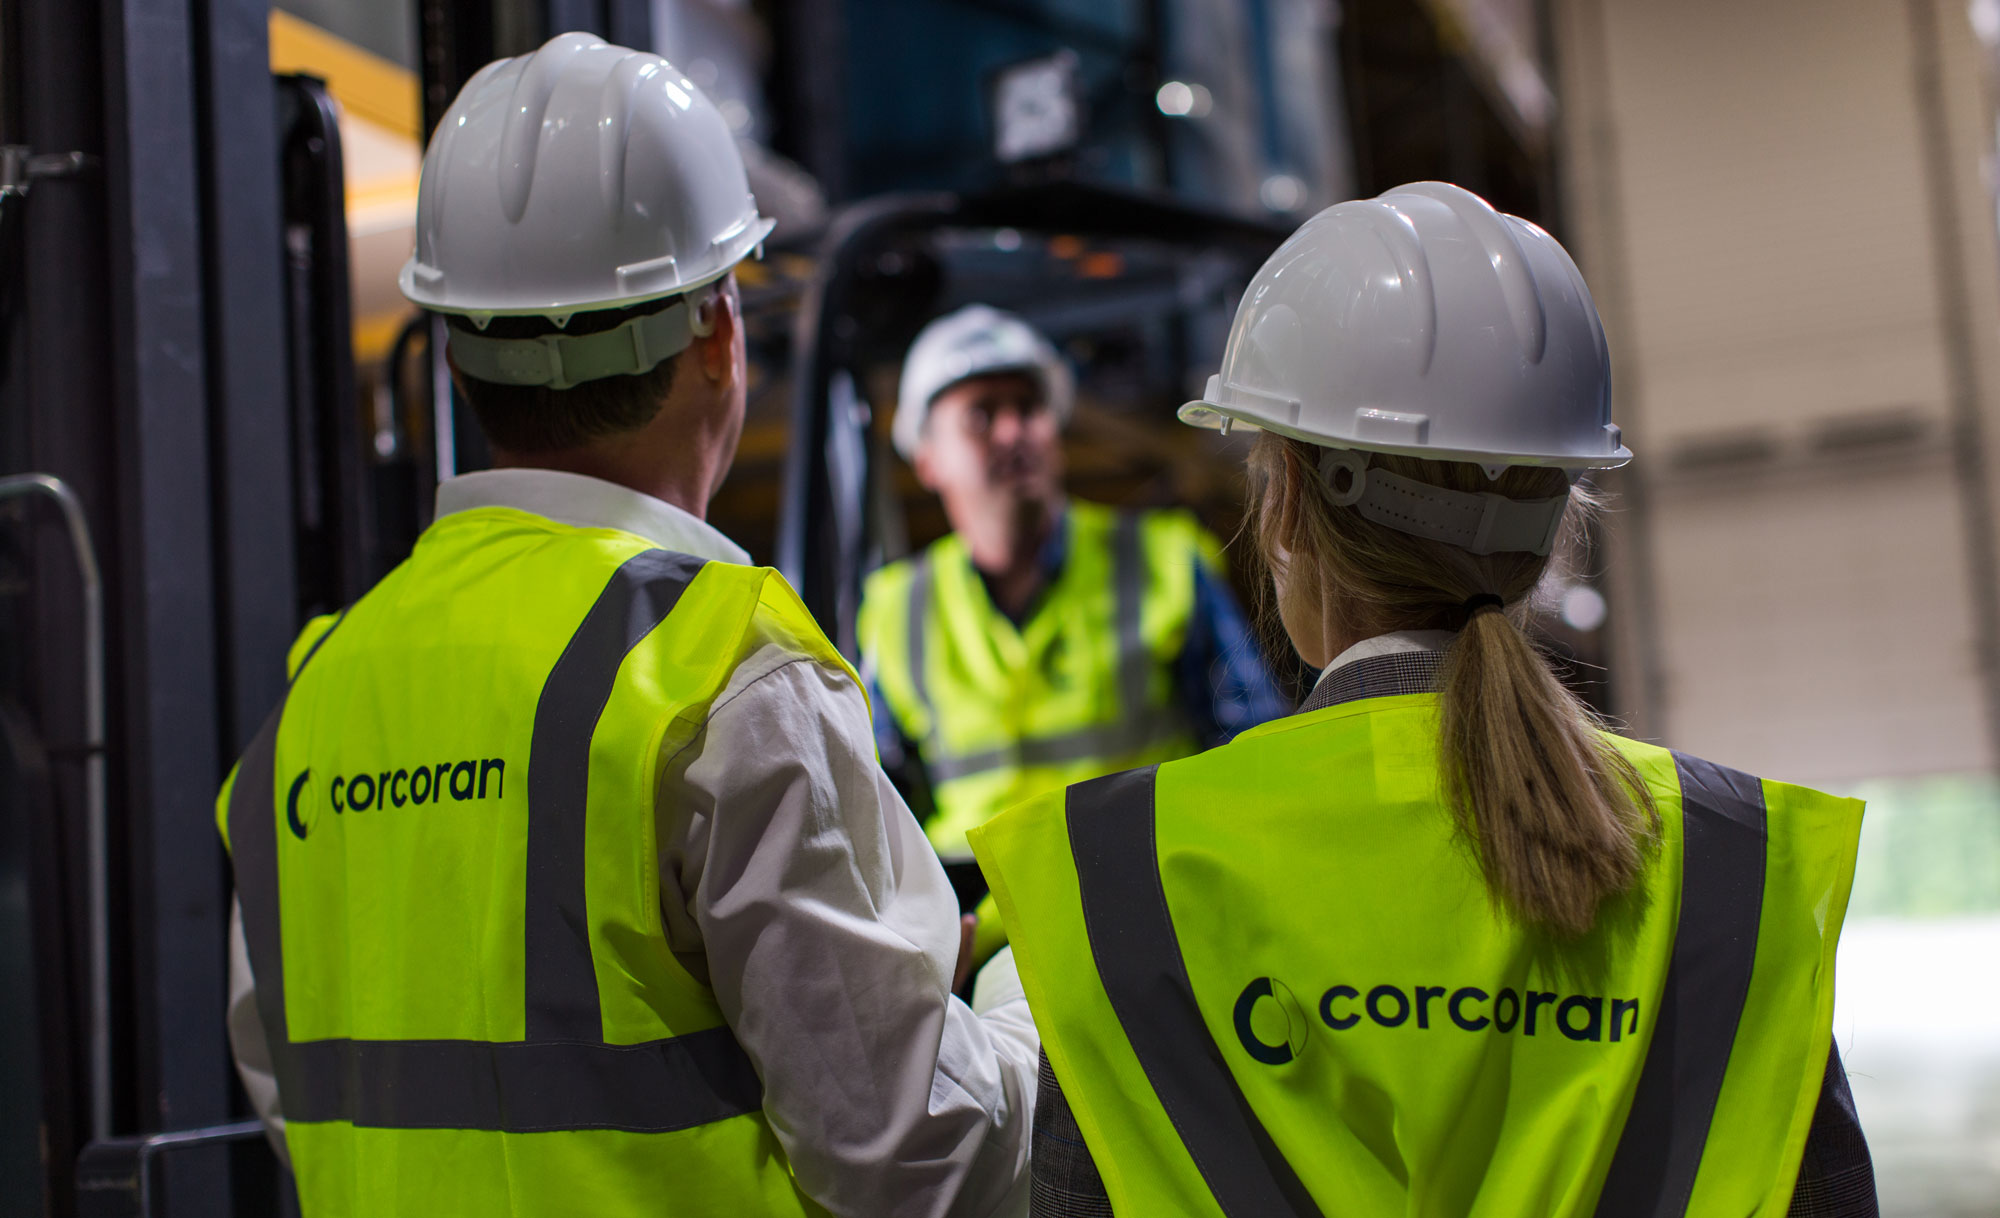 Corcoran chemicals products where house team image